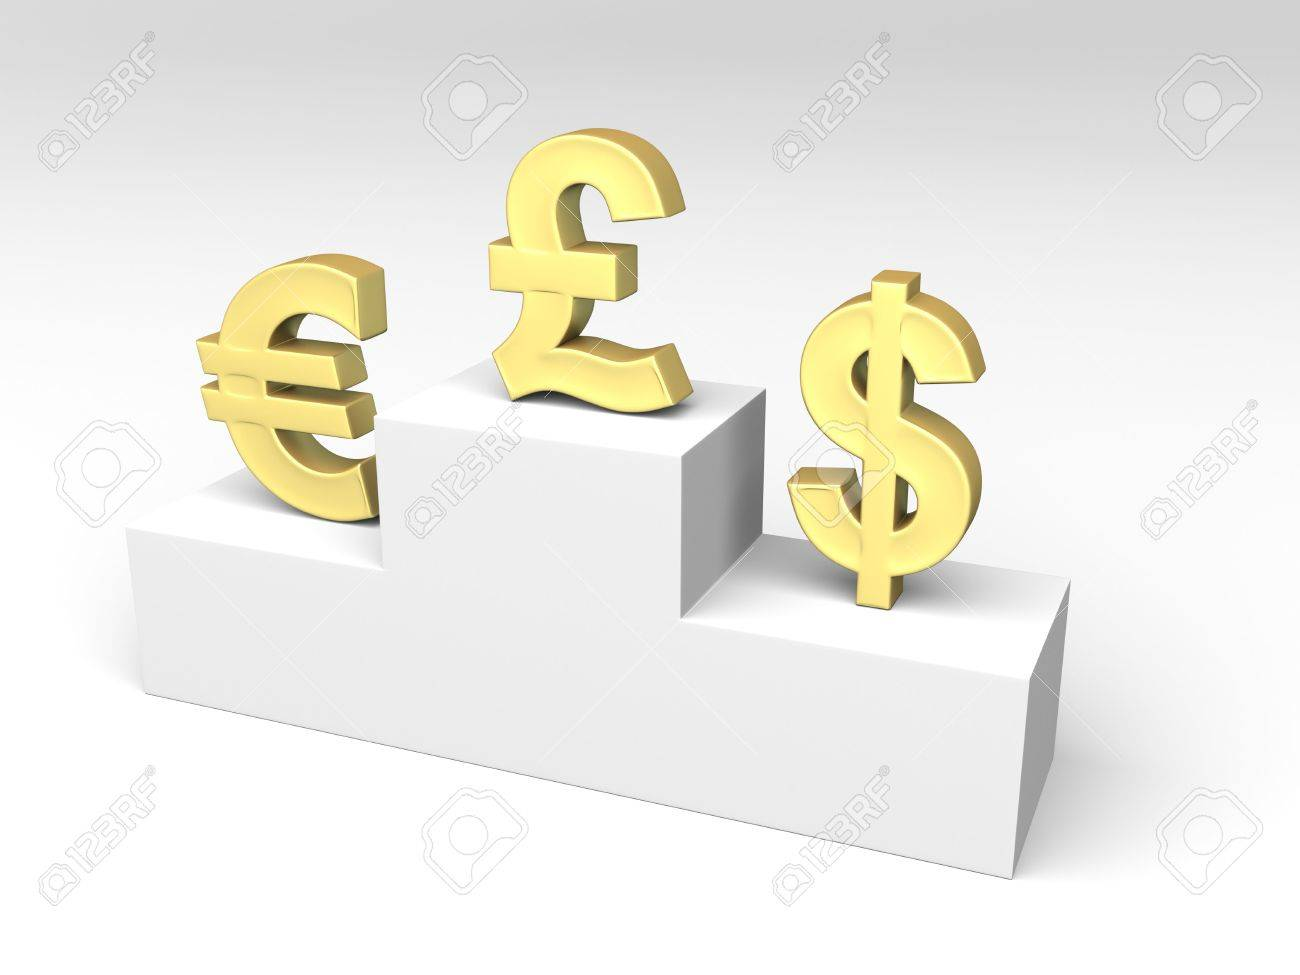 Currencies Exchange Rates Shown By Some Currency Symbols Standing